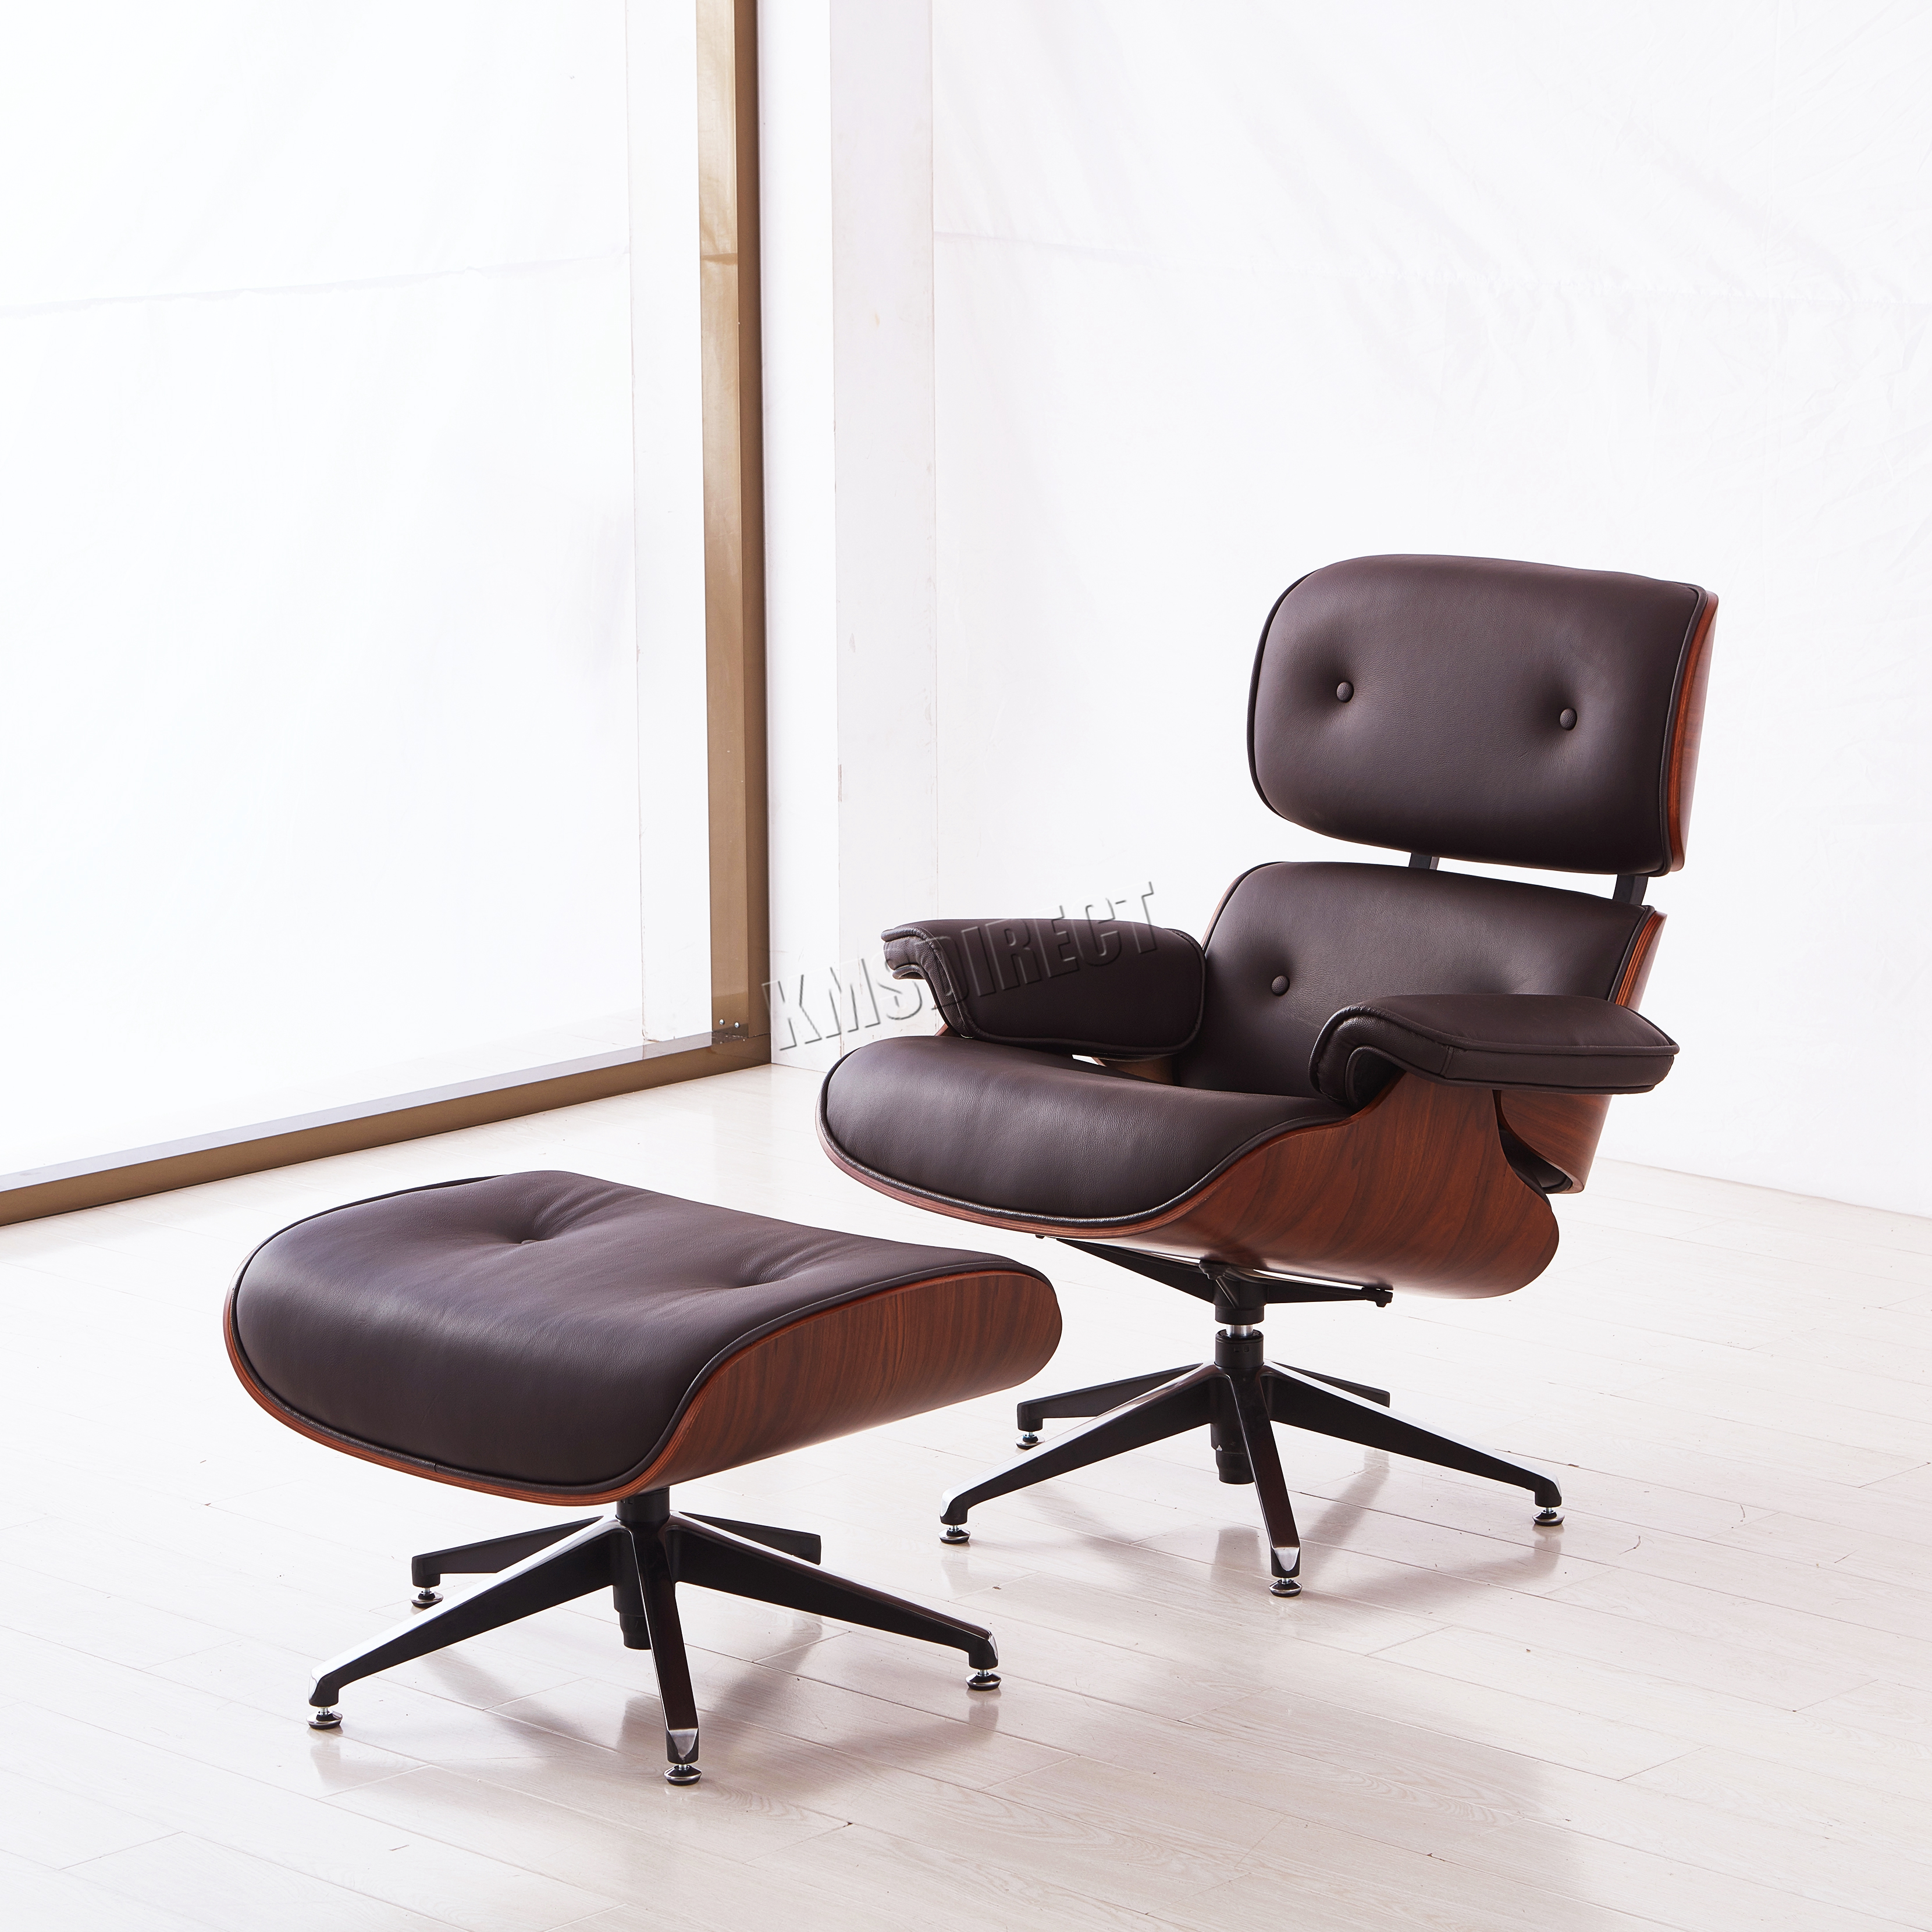 Foxhunter luxury lounge chair and ottoman real genuine